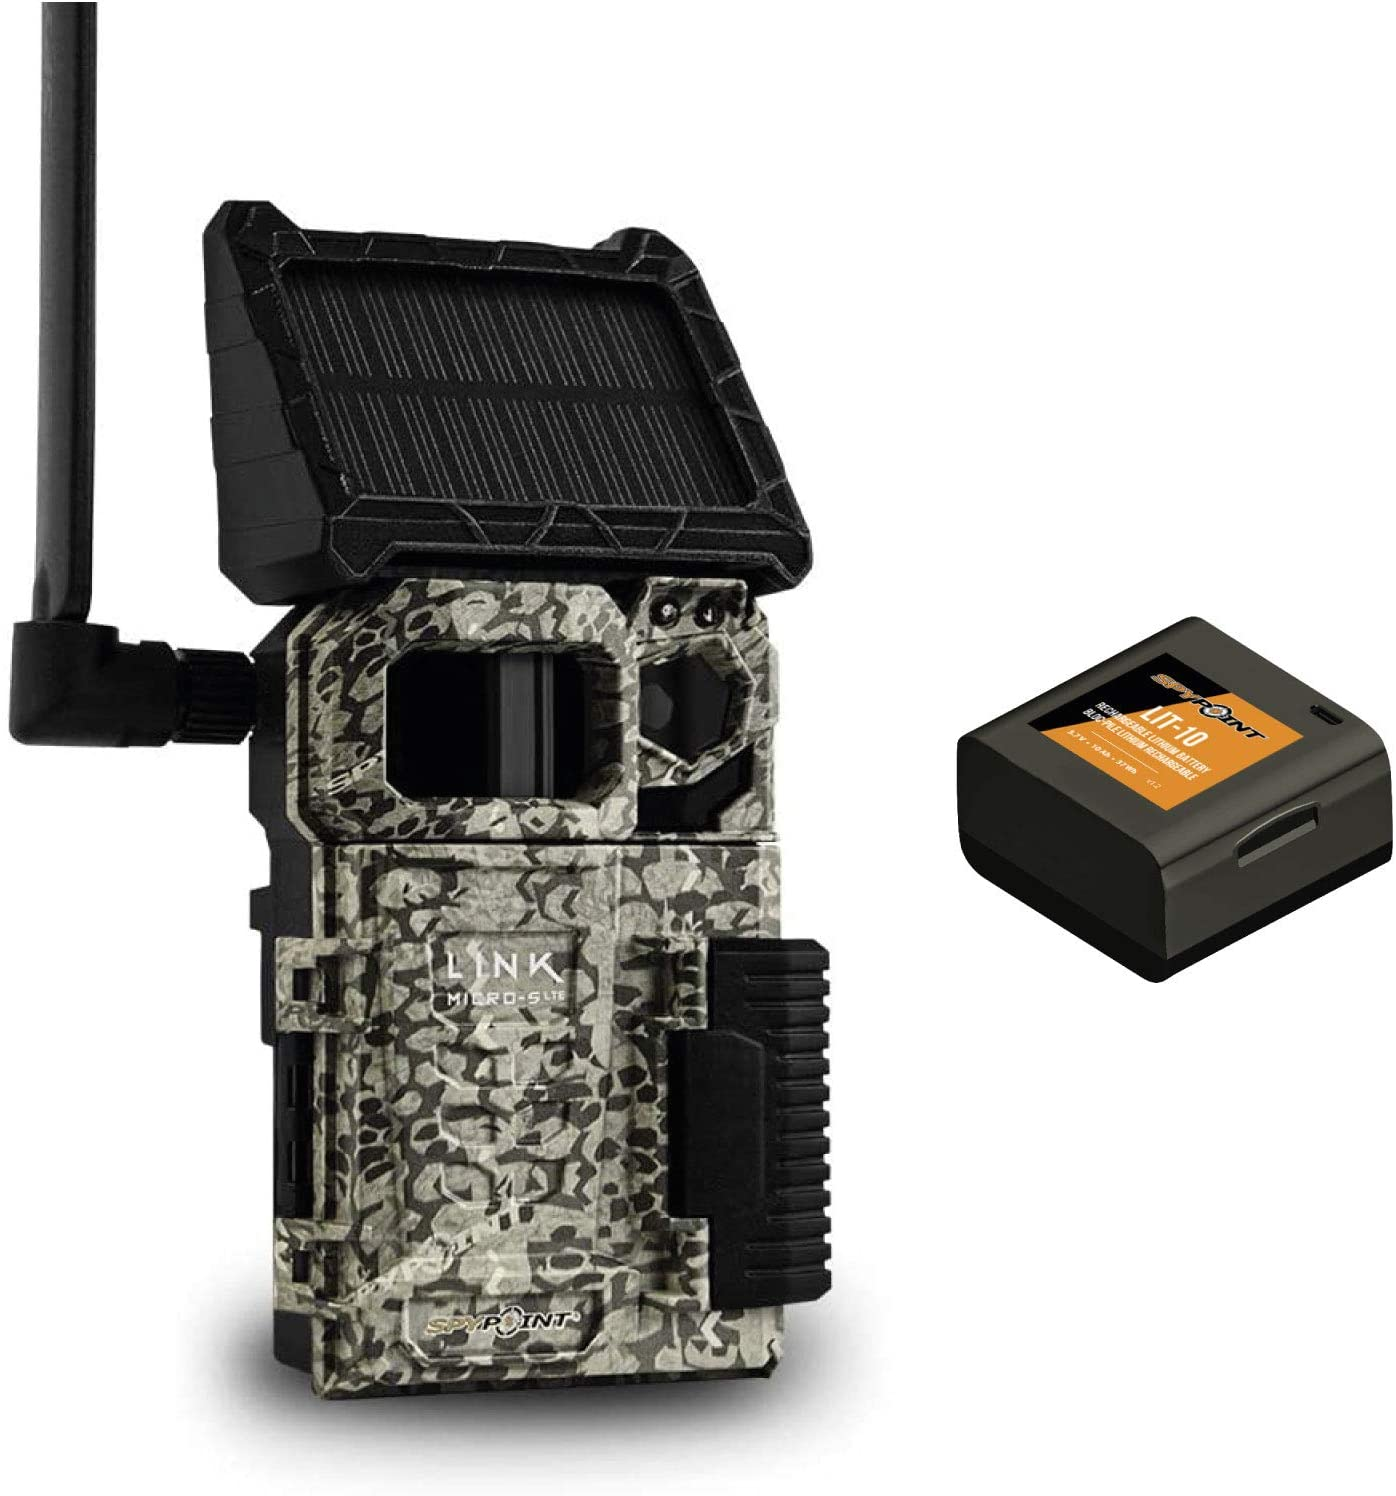 The Spypoint Link-Mircro-S LTE